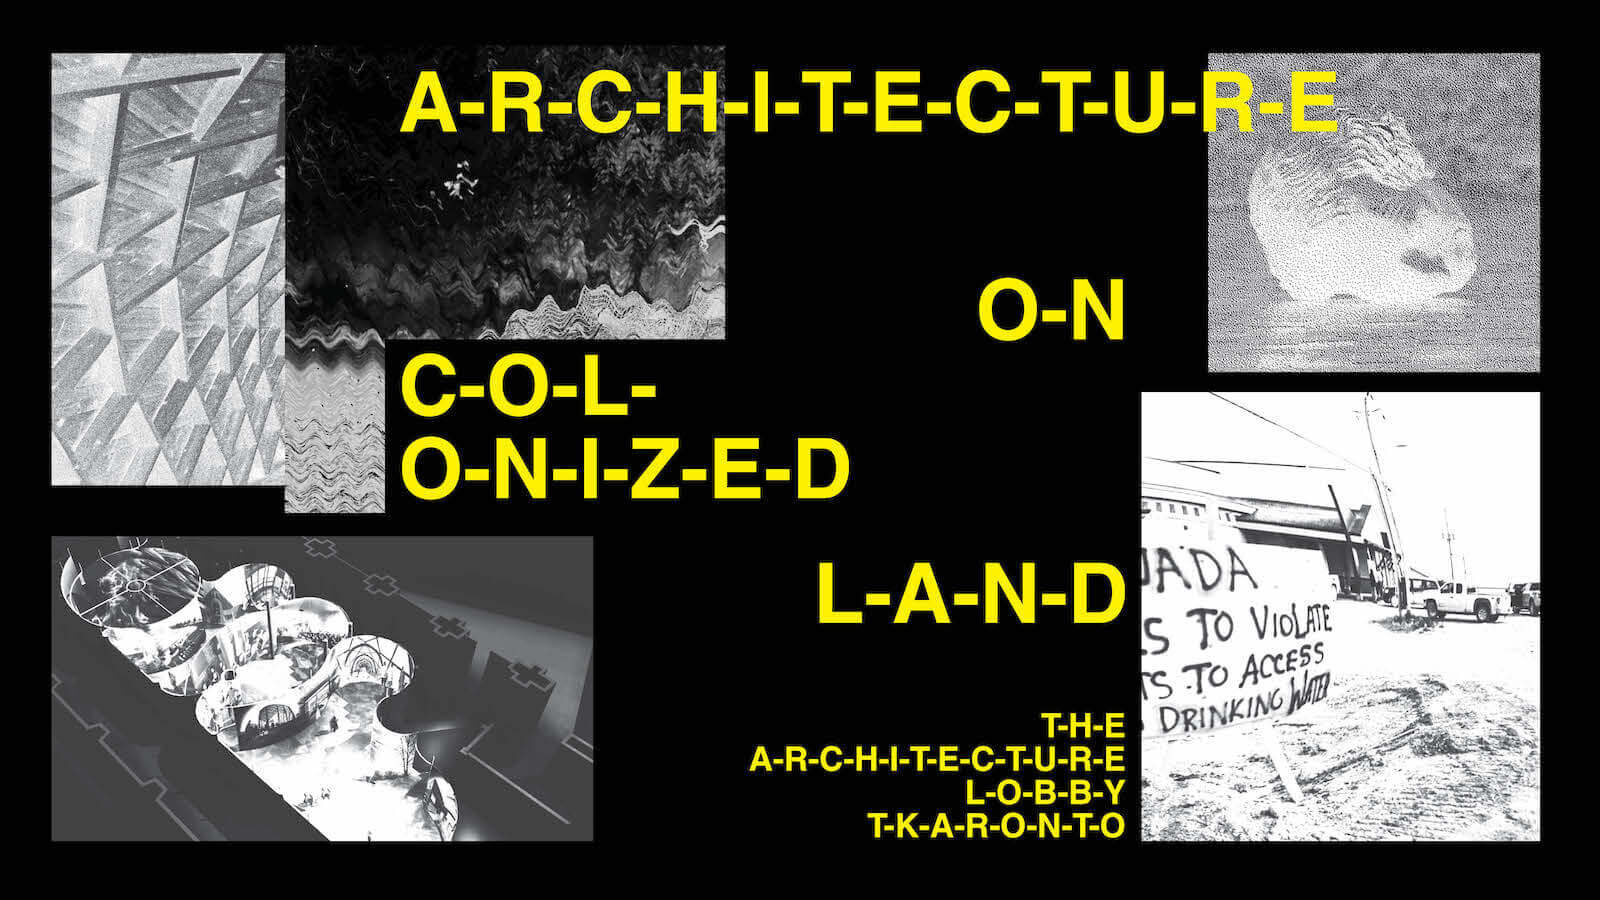 Architecture Lobby: Design on Colonized Land